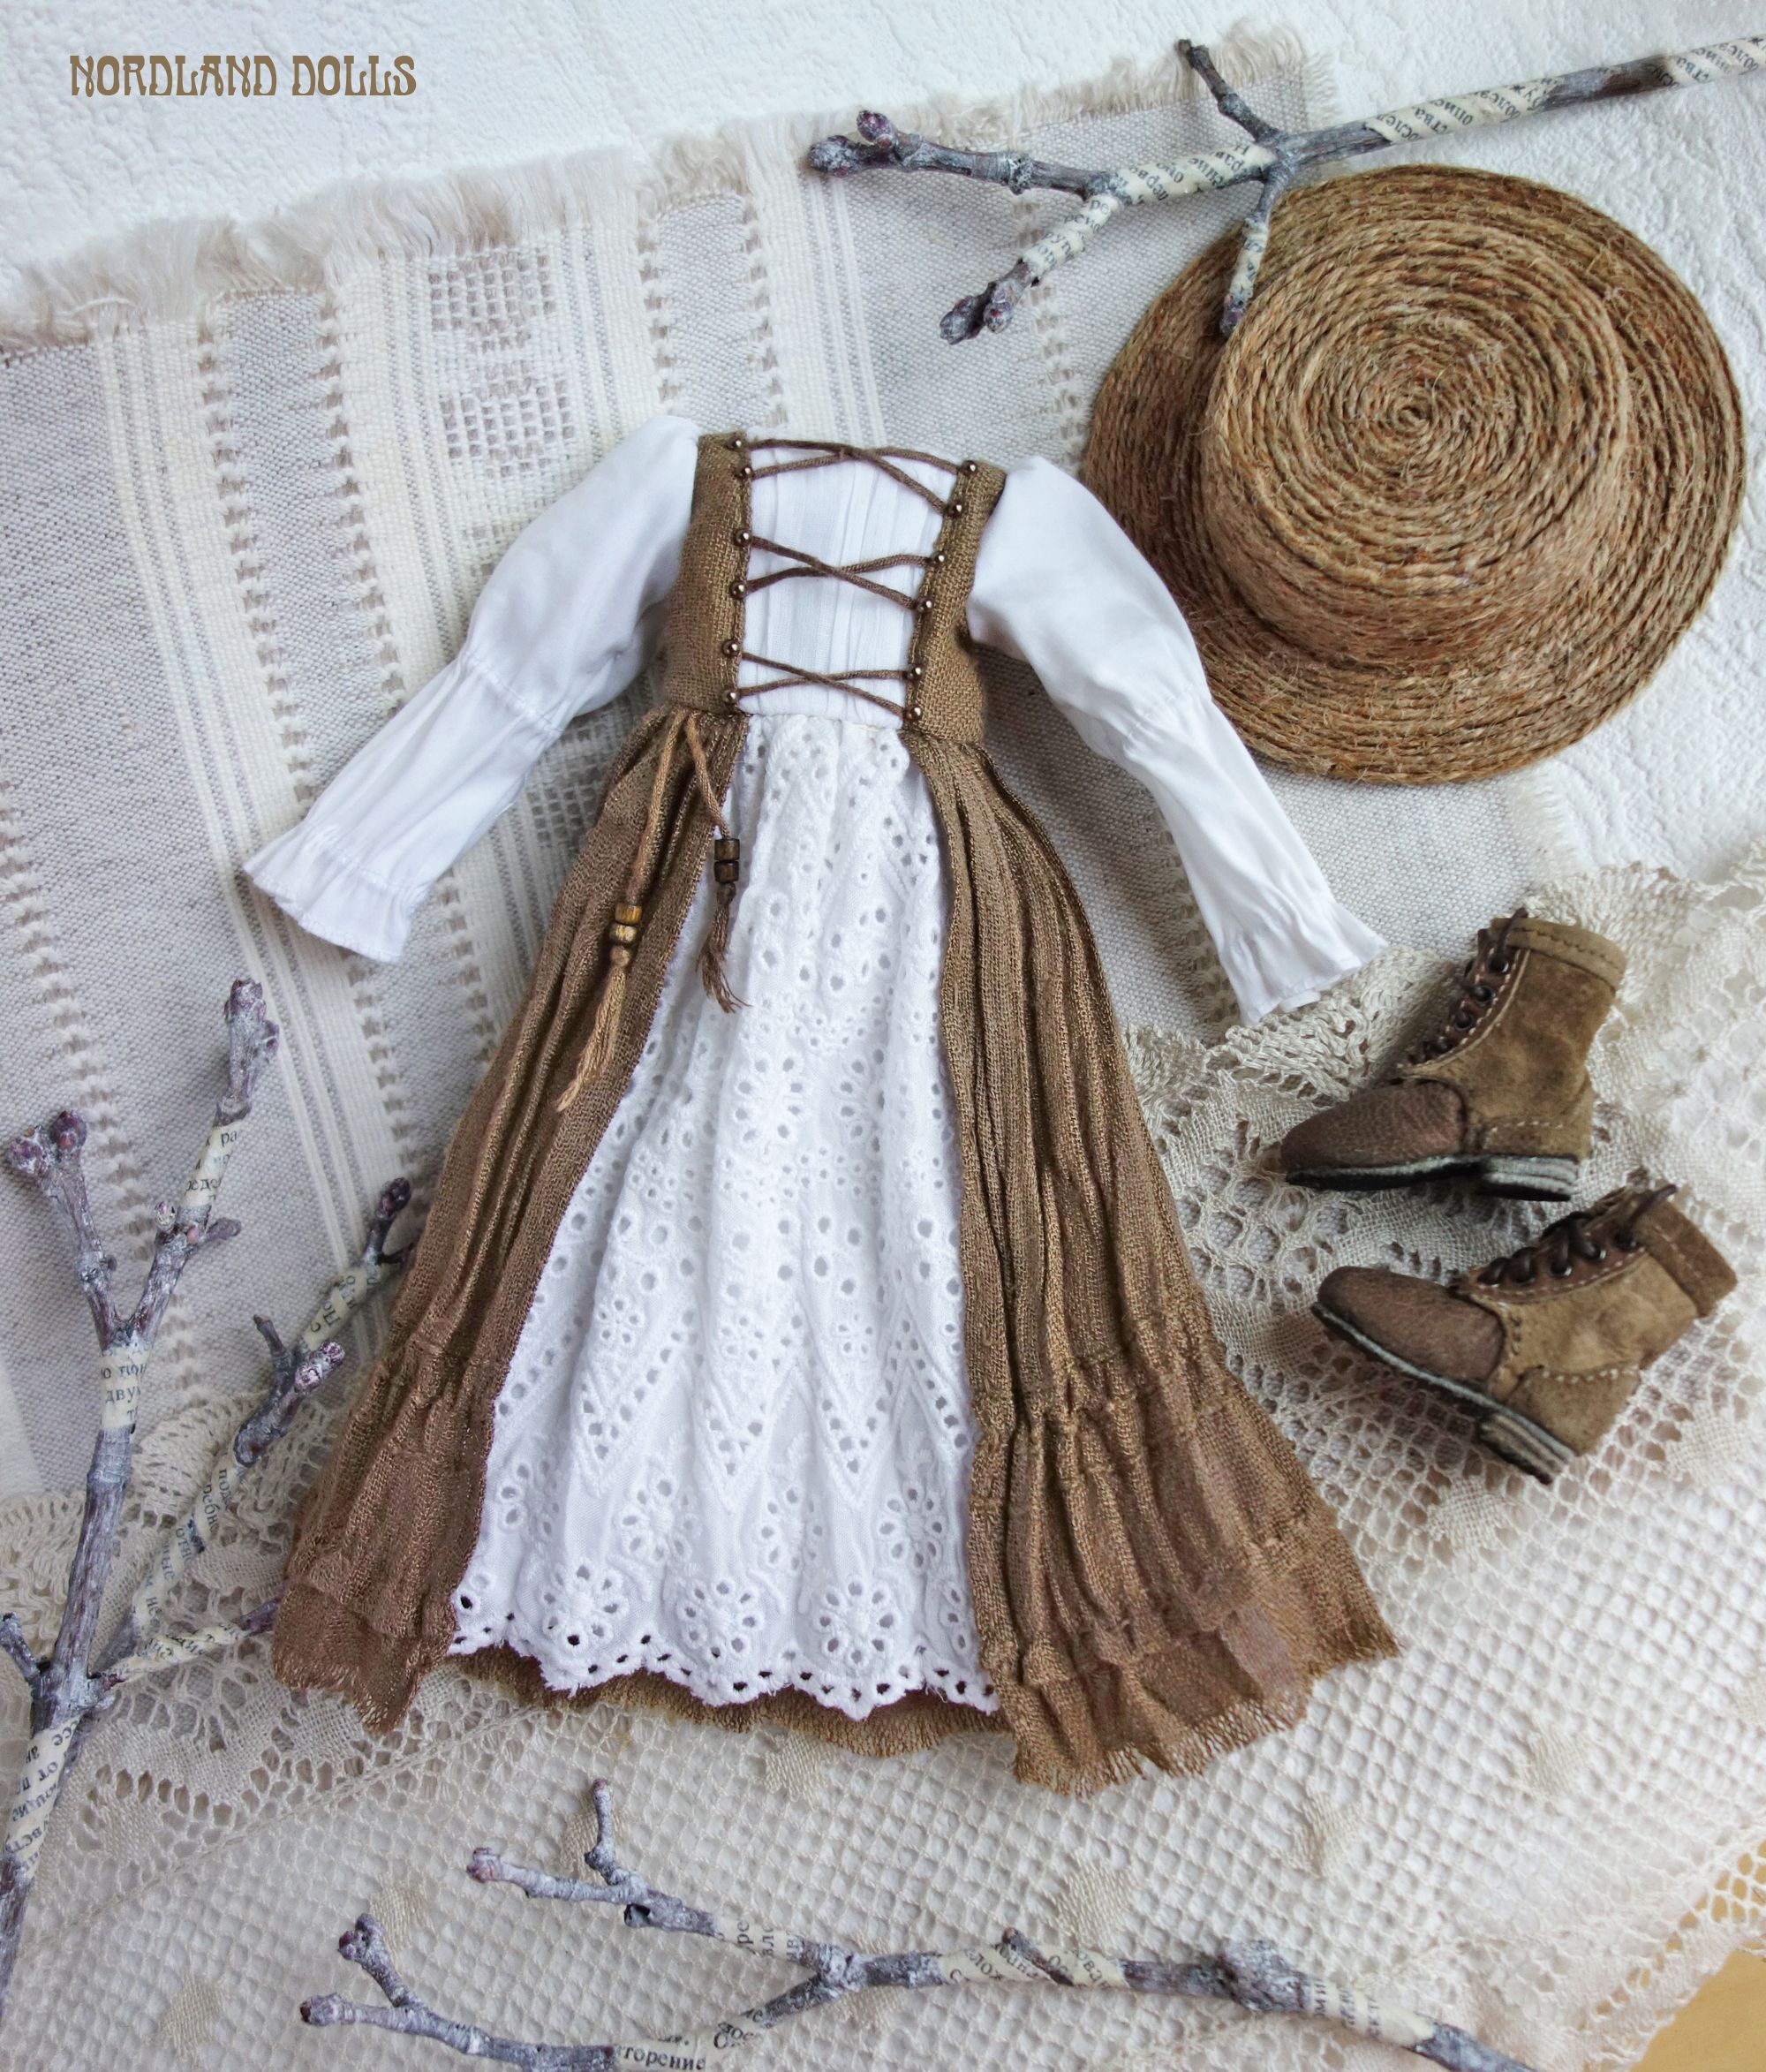 Rustic brown and white Boho Mori style dress and boots for Soom iMda doll 3.0 by Nordland Dolls #dollclothes